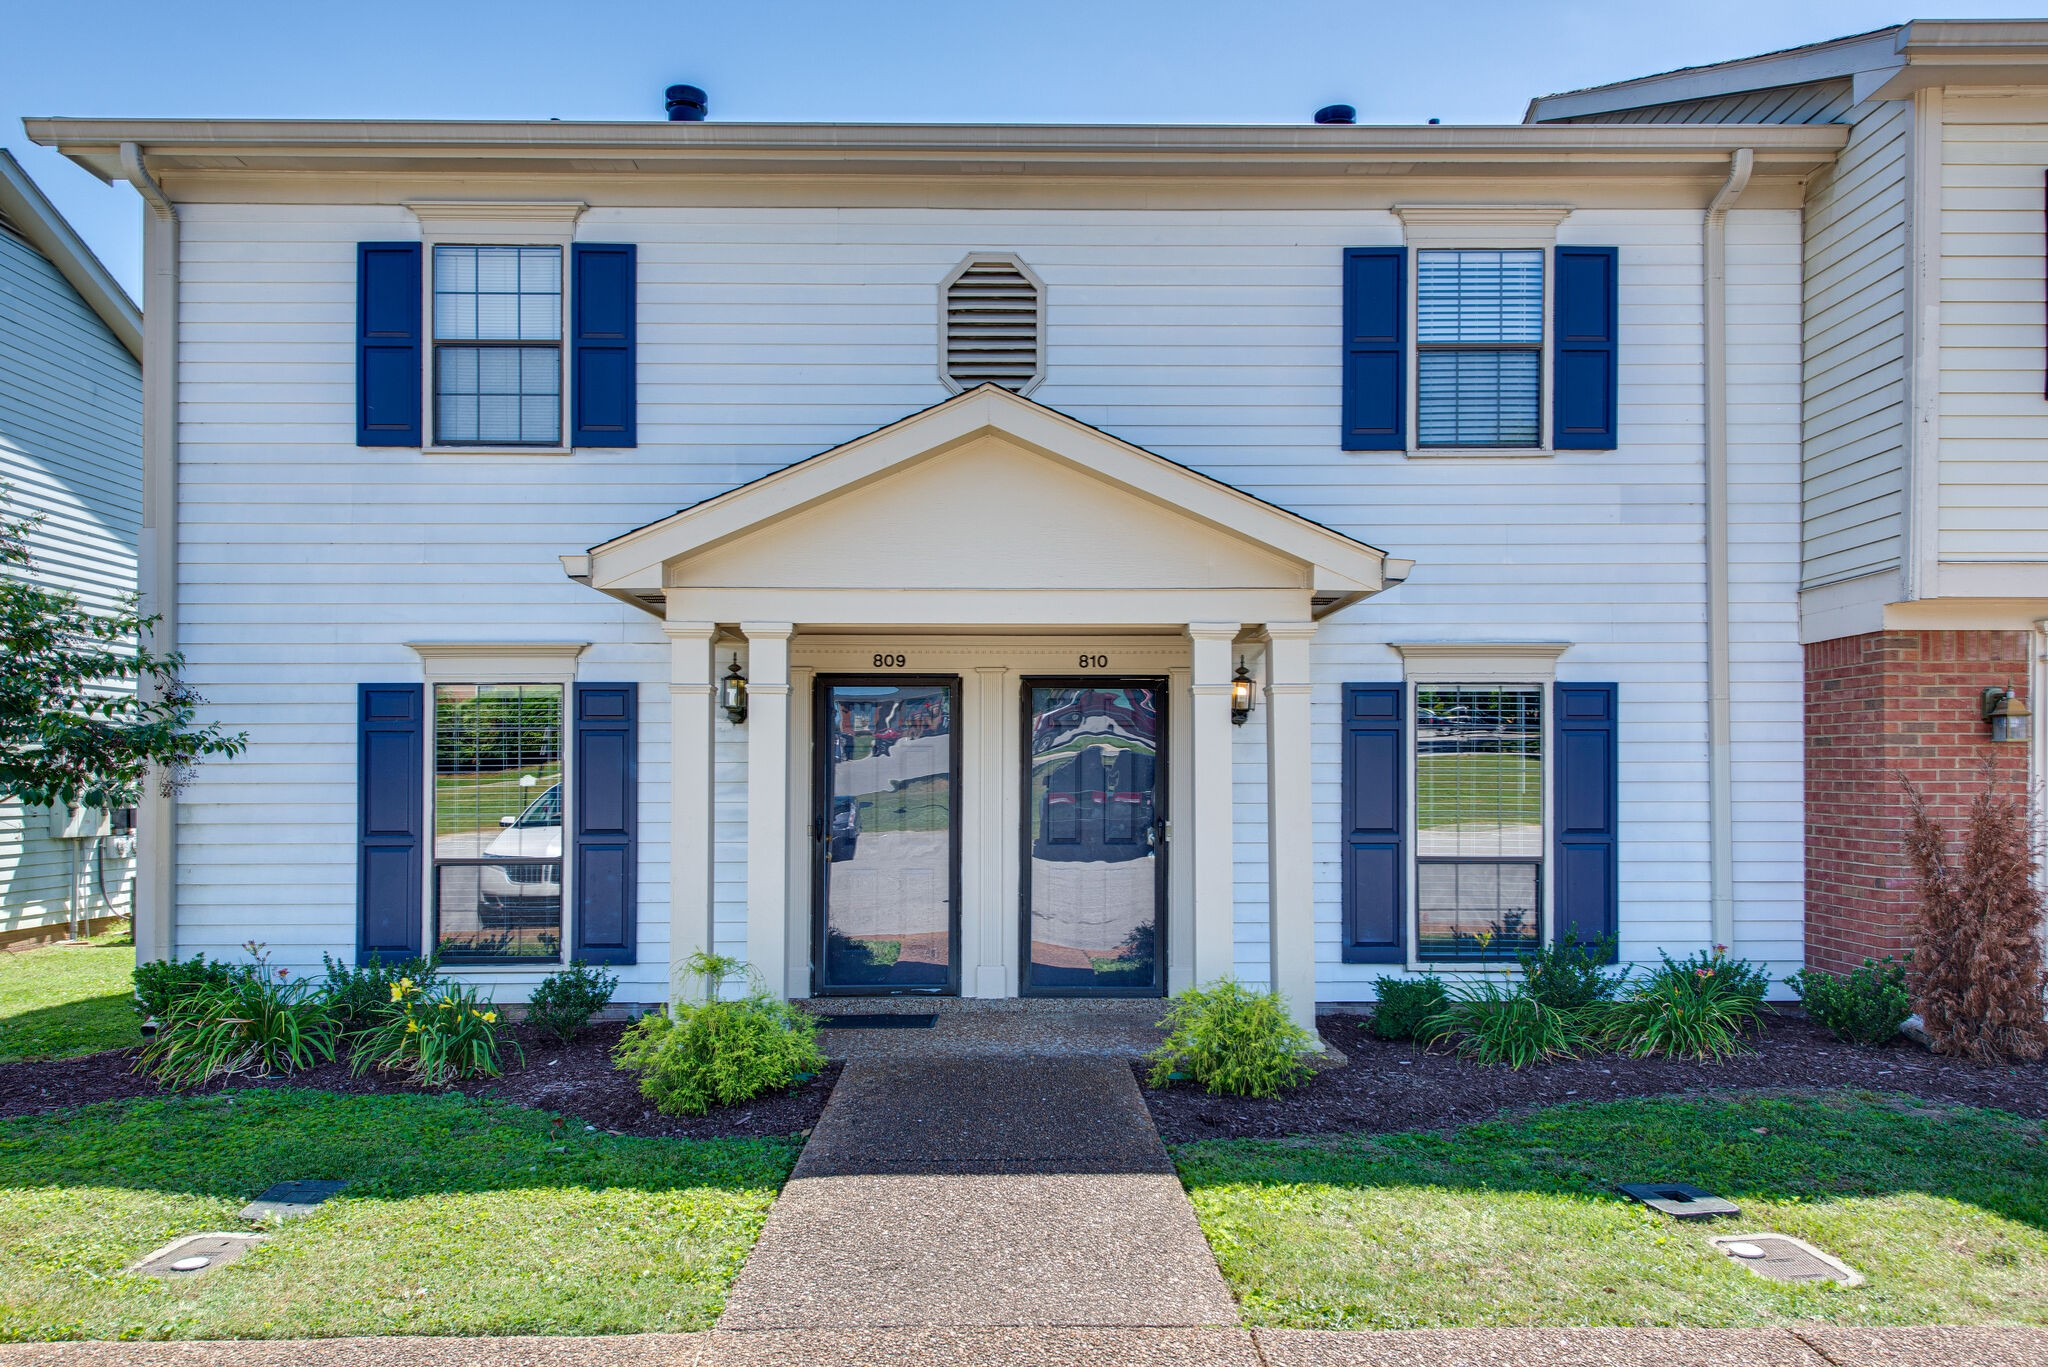 810 Brentwood Pointe Property Photo - Brentwood, TN real estate listing